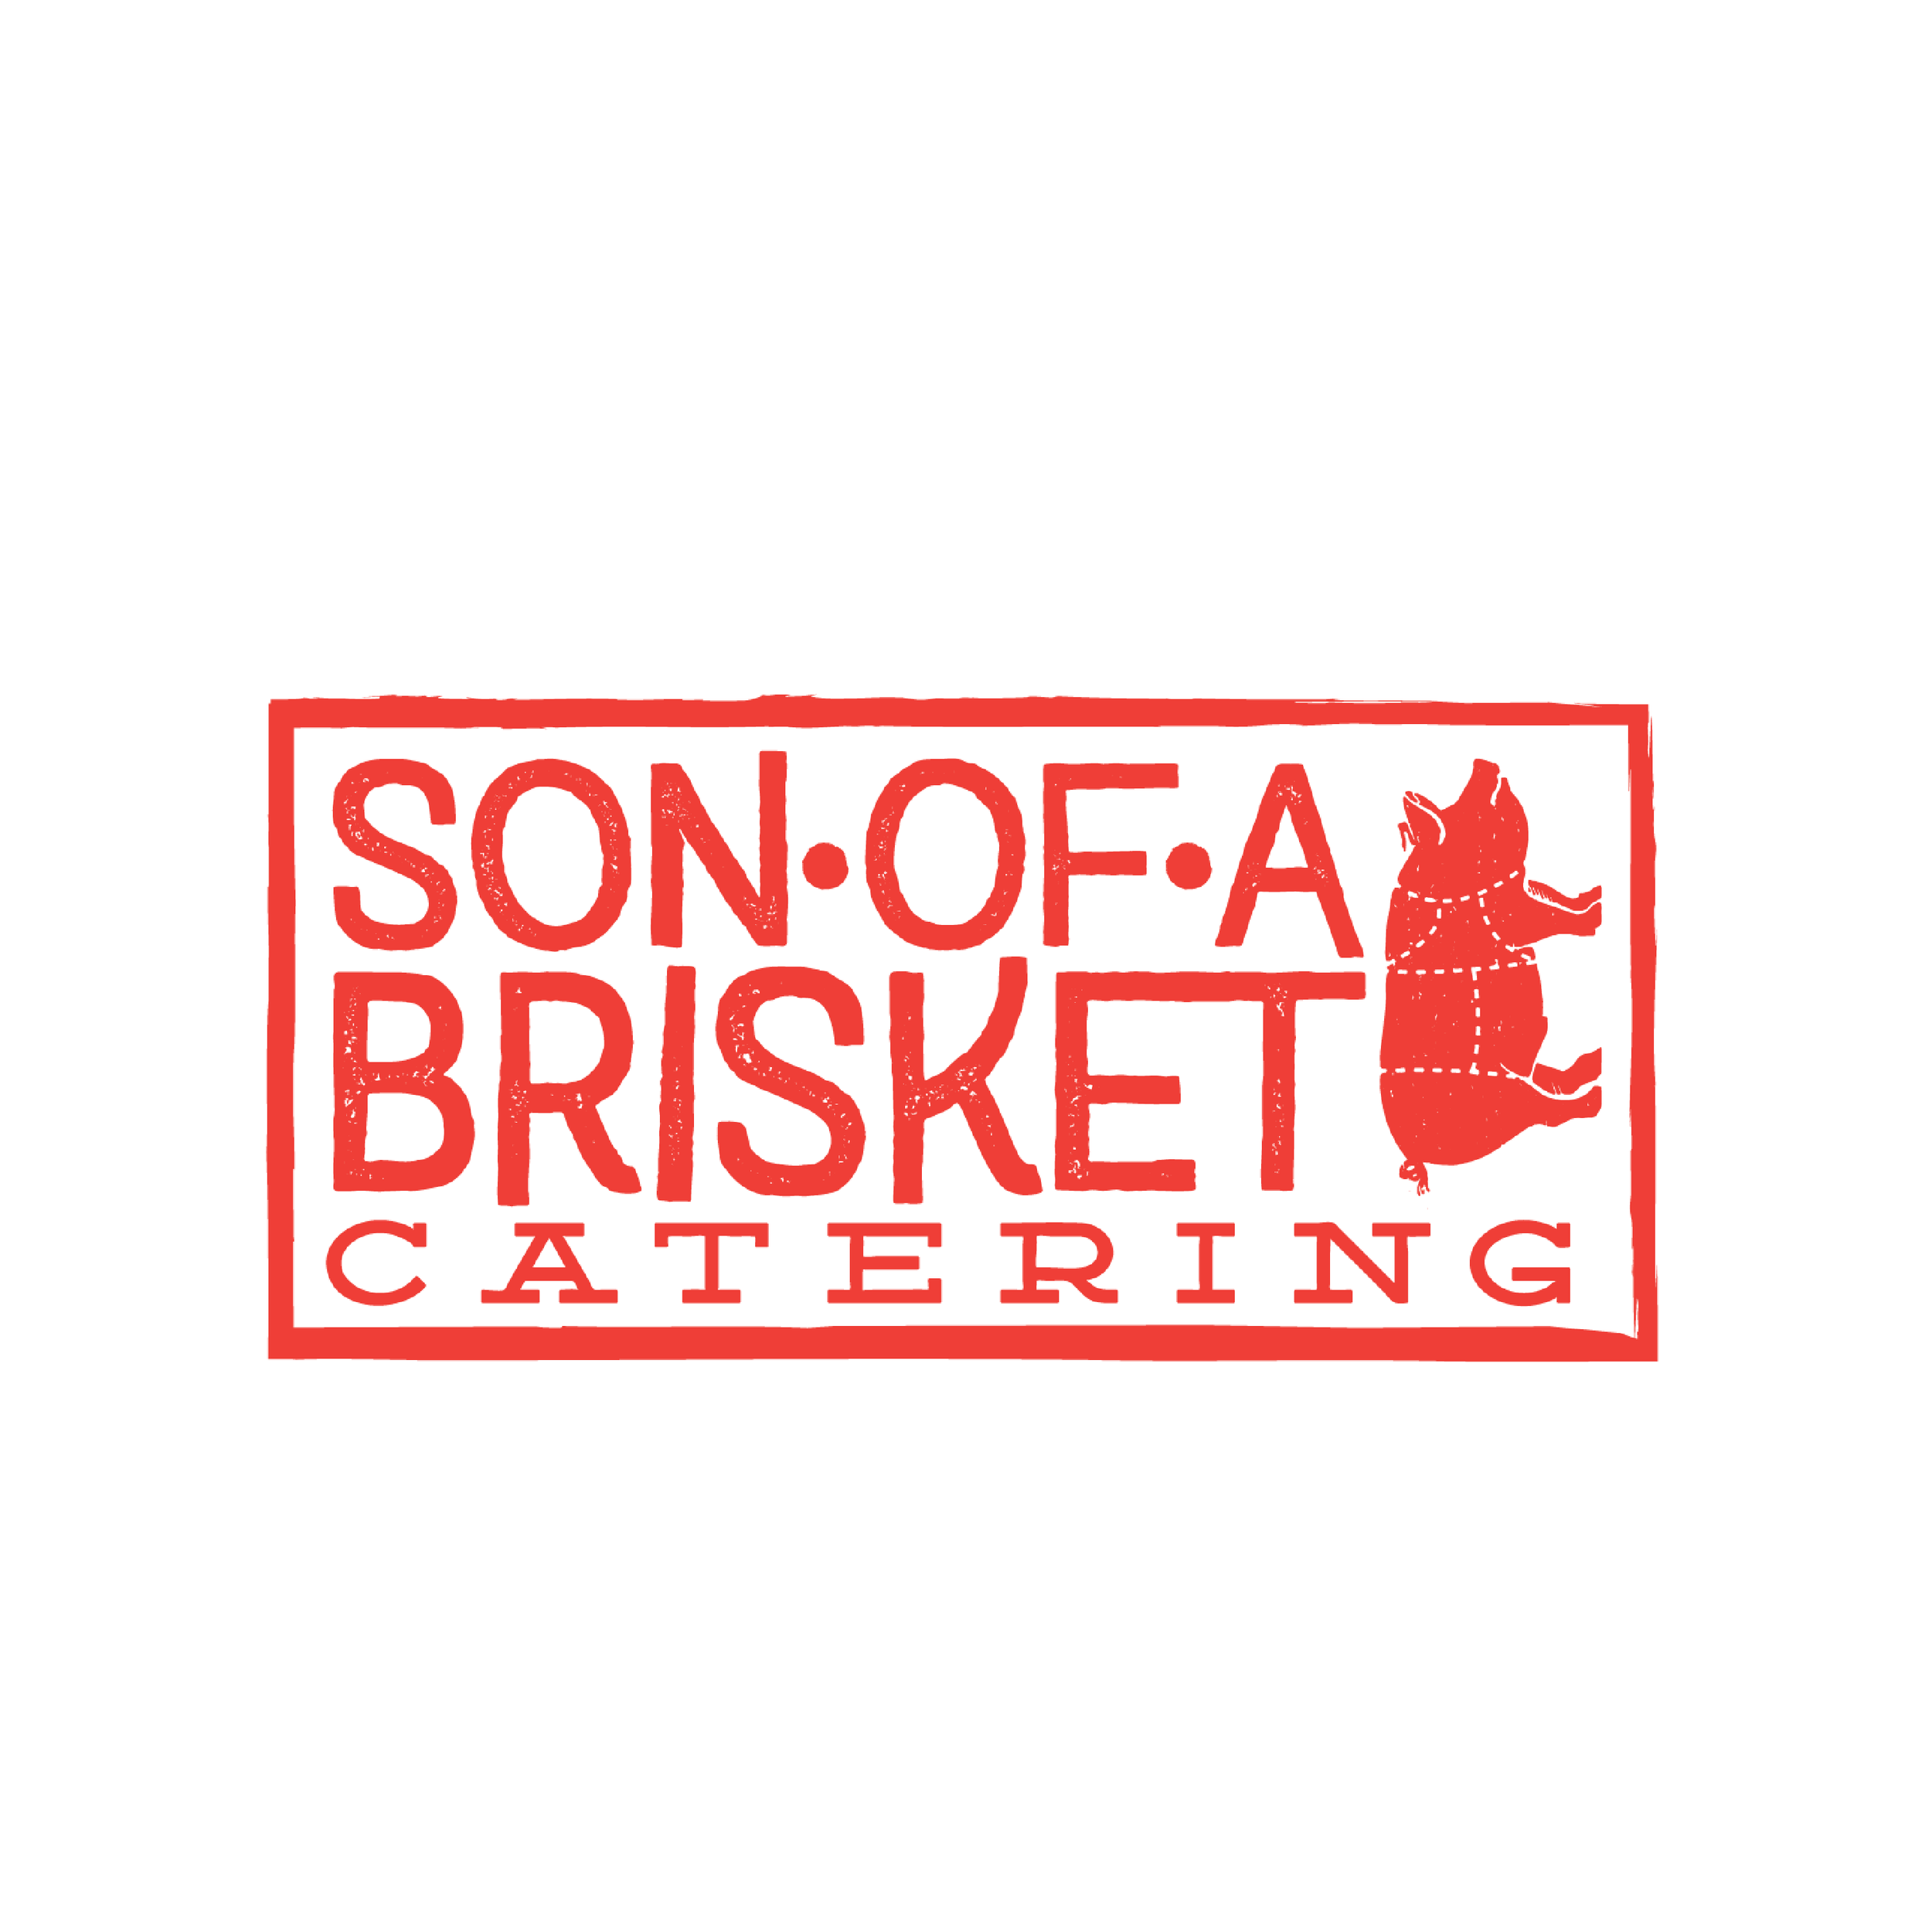 Son of a Brisket   is a full service catering company. From the simple to the complicated SOB can appeal to every palate. They get passionate about food and will take care of any of your events!